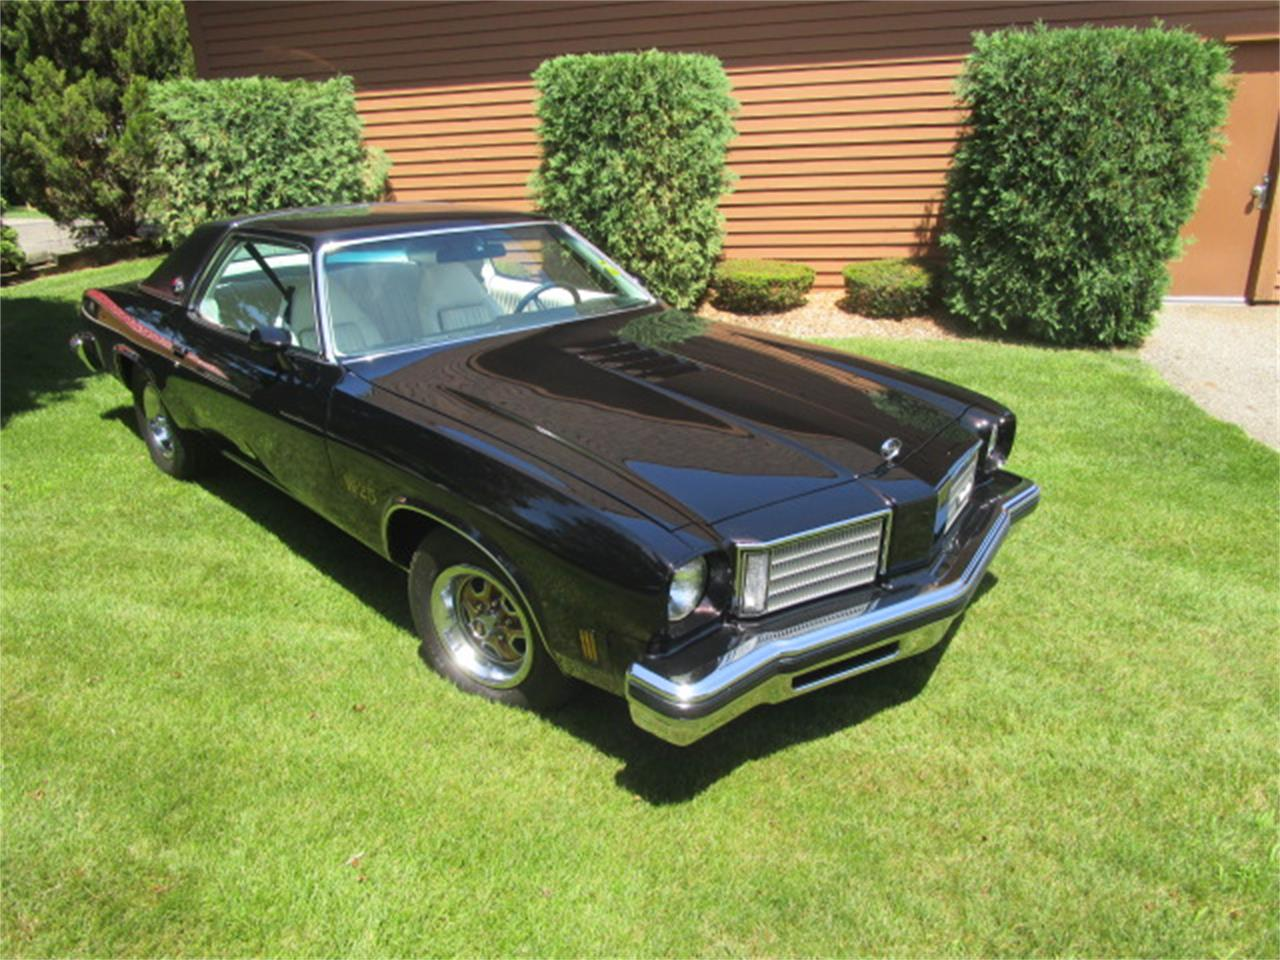 Large Picture of 1975 Oldsmobile Hurst - $19,950.00 Offered by a Private Seller - MXYR